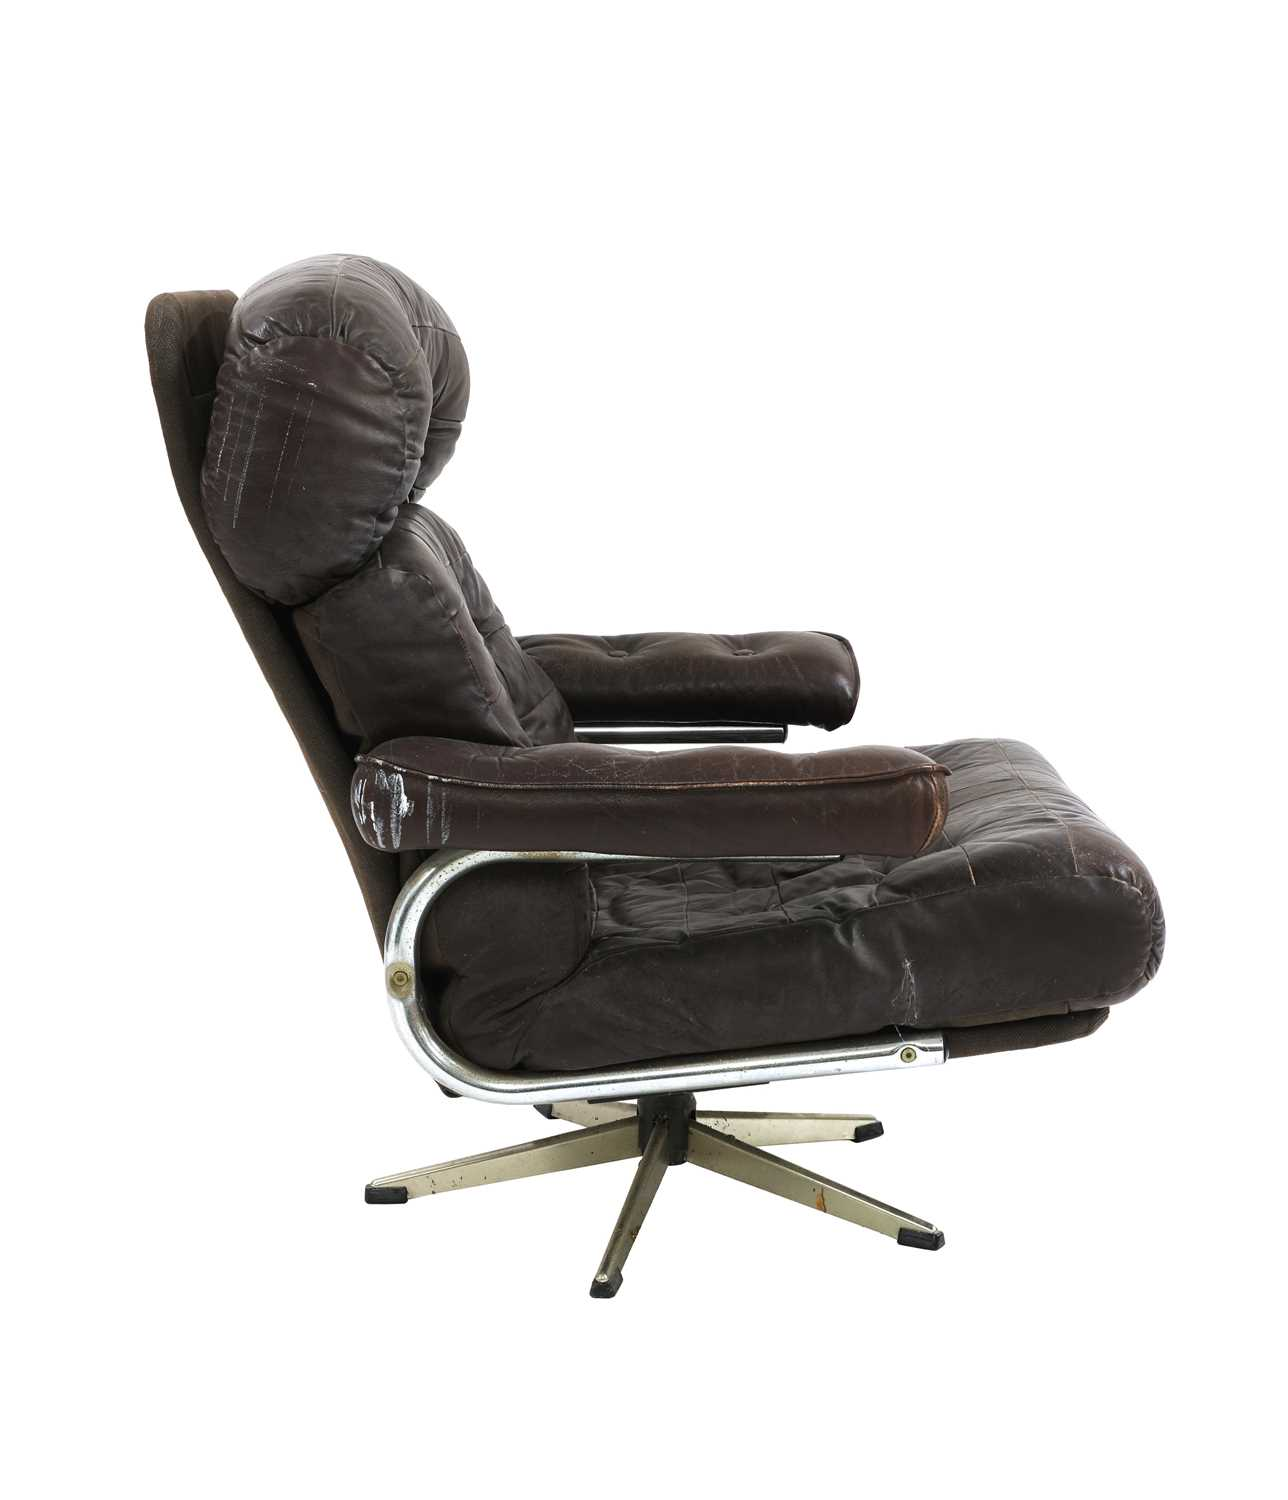 A chocolate leather lounger, - Image 4 of 4